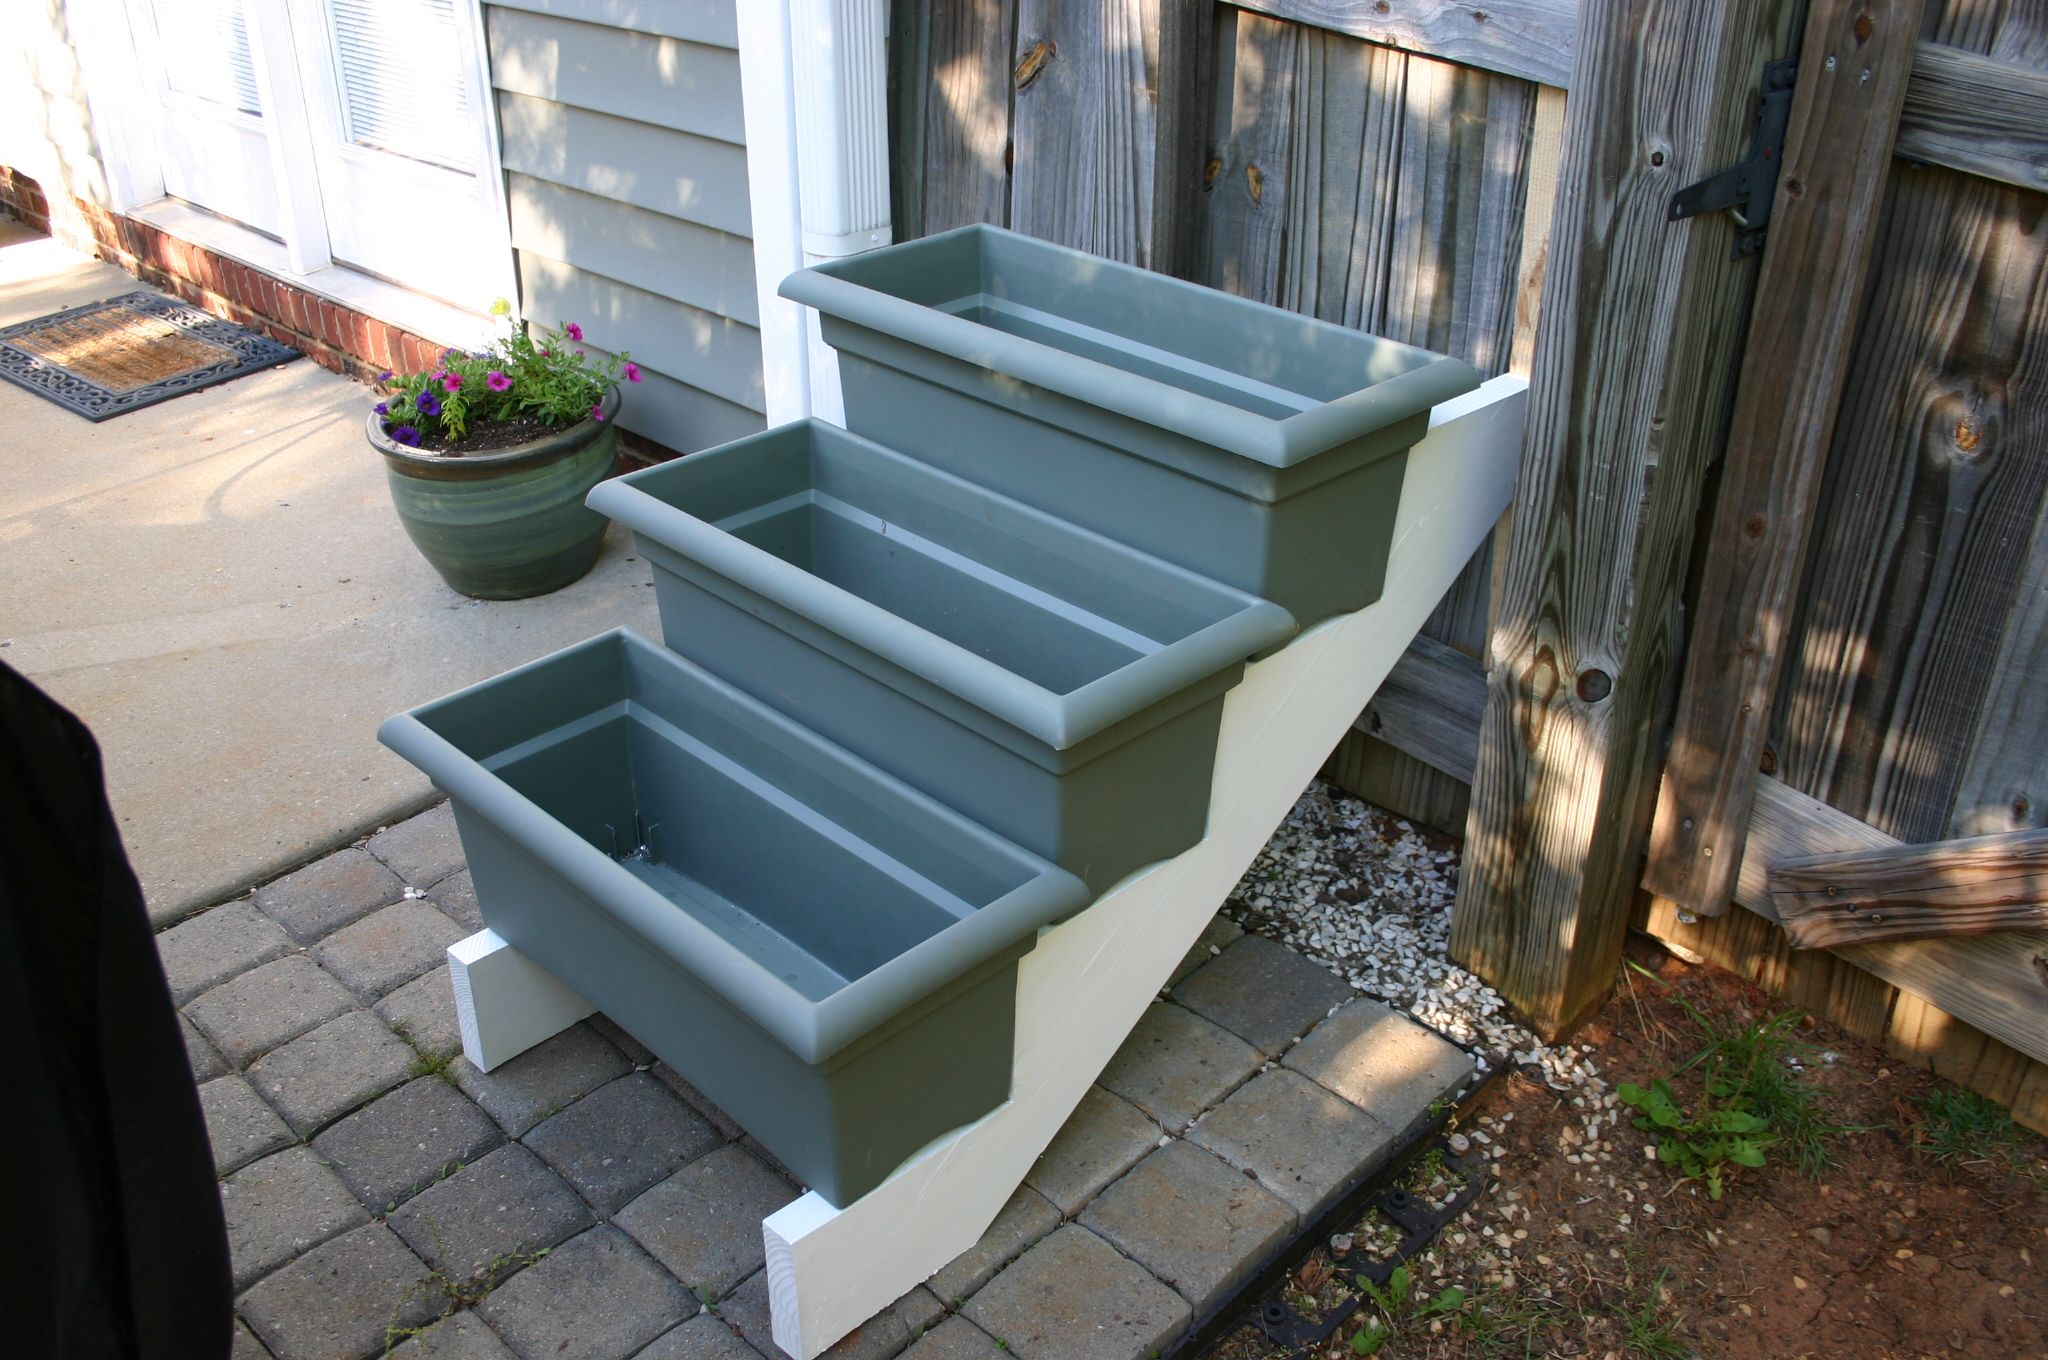 Purchased stair risers from home imp. store